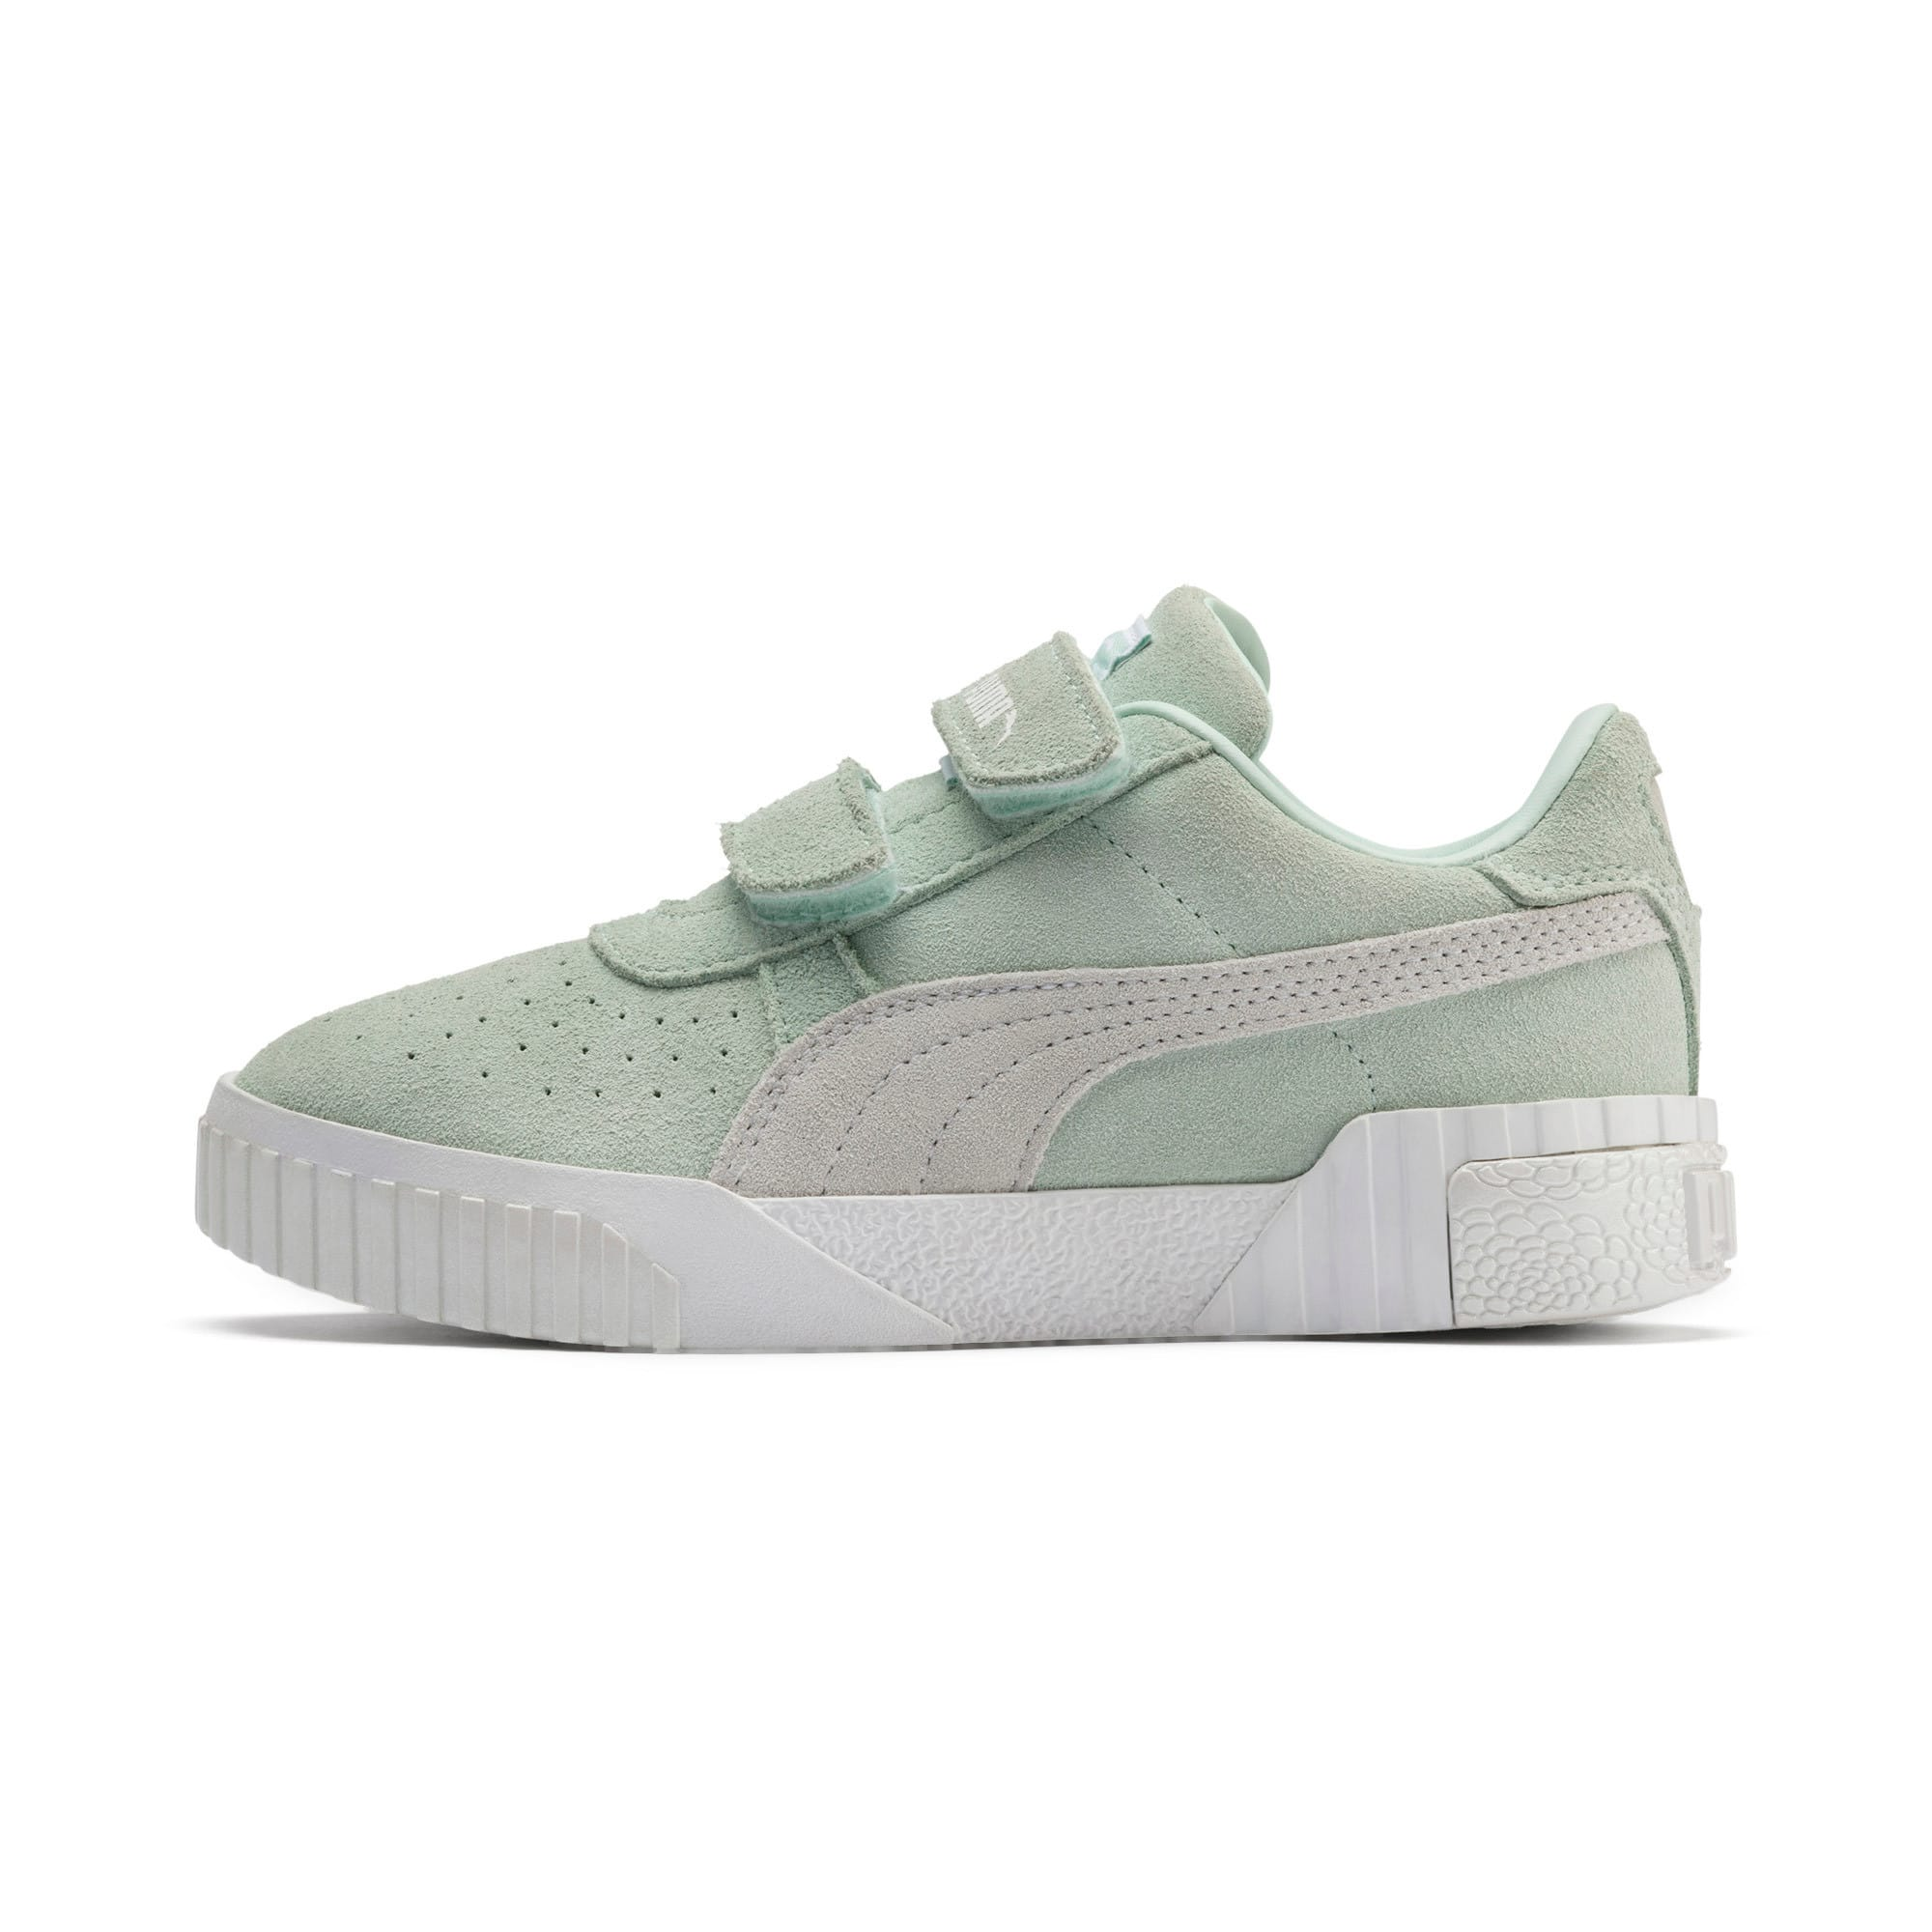 Thumbnail 1 of PUMA x Selena Gomez Kids' Cali Patent Trainers, Fair Aqua-Puma White, medium